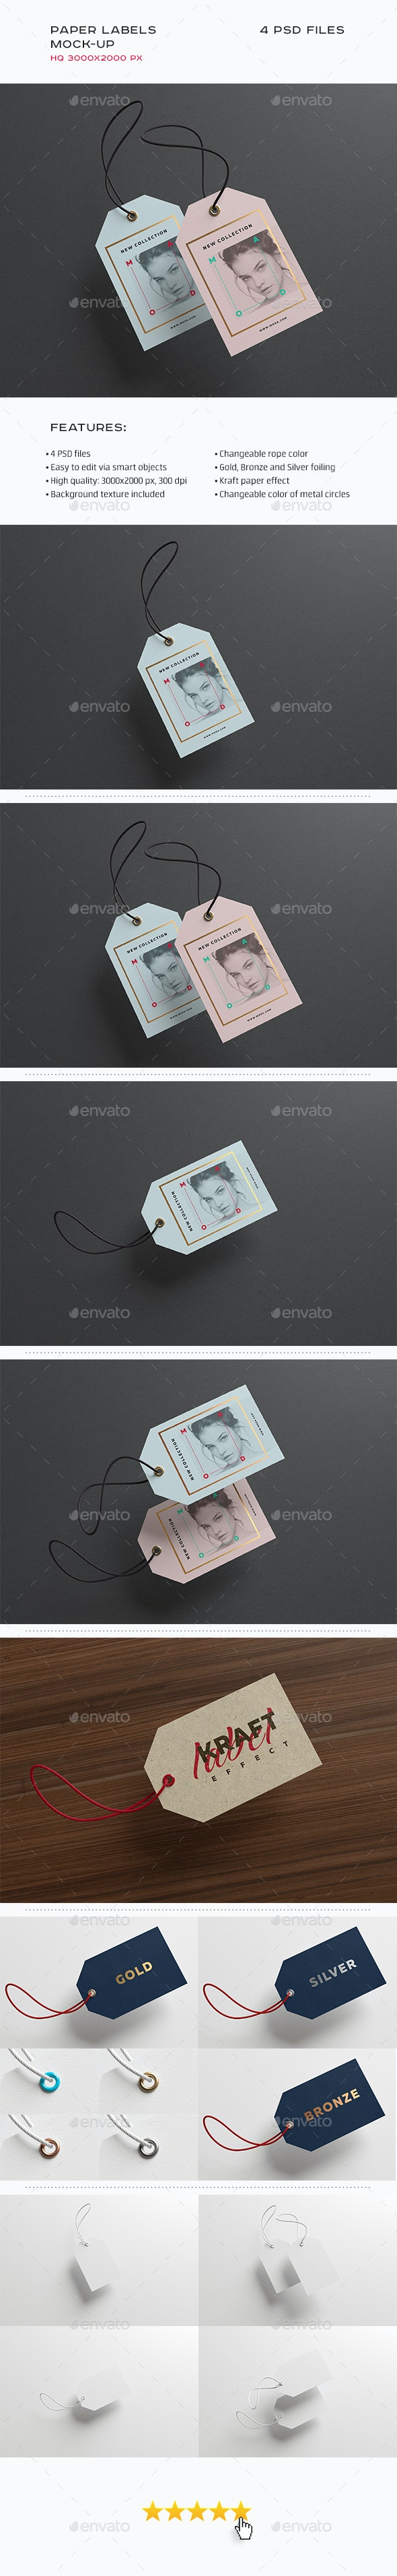 Paper Label / Swing Tags Mock-up - Miscellaneous Print